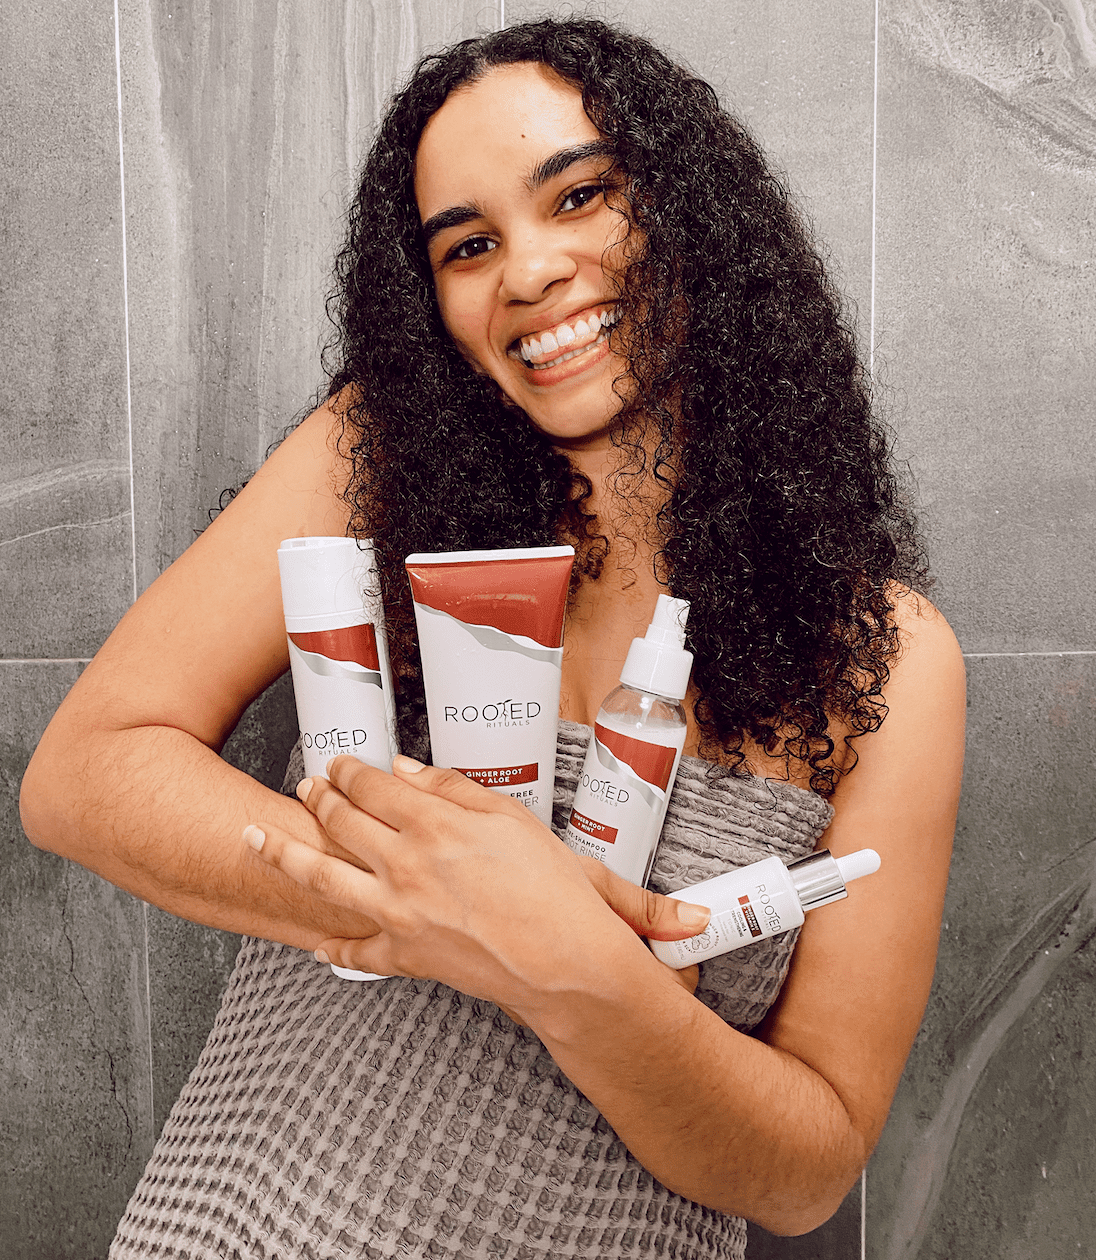 Using This $10 Product Has Made a Huge Difference in the Health of My Curls